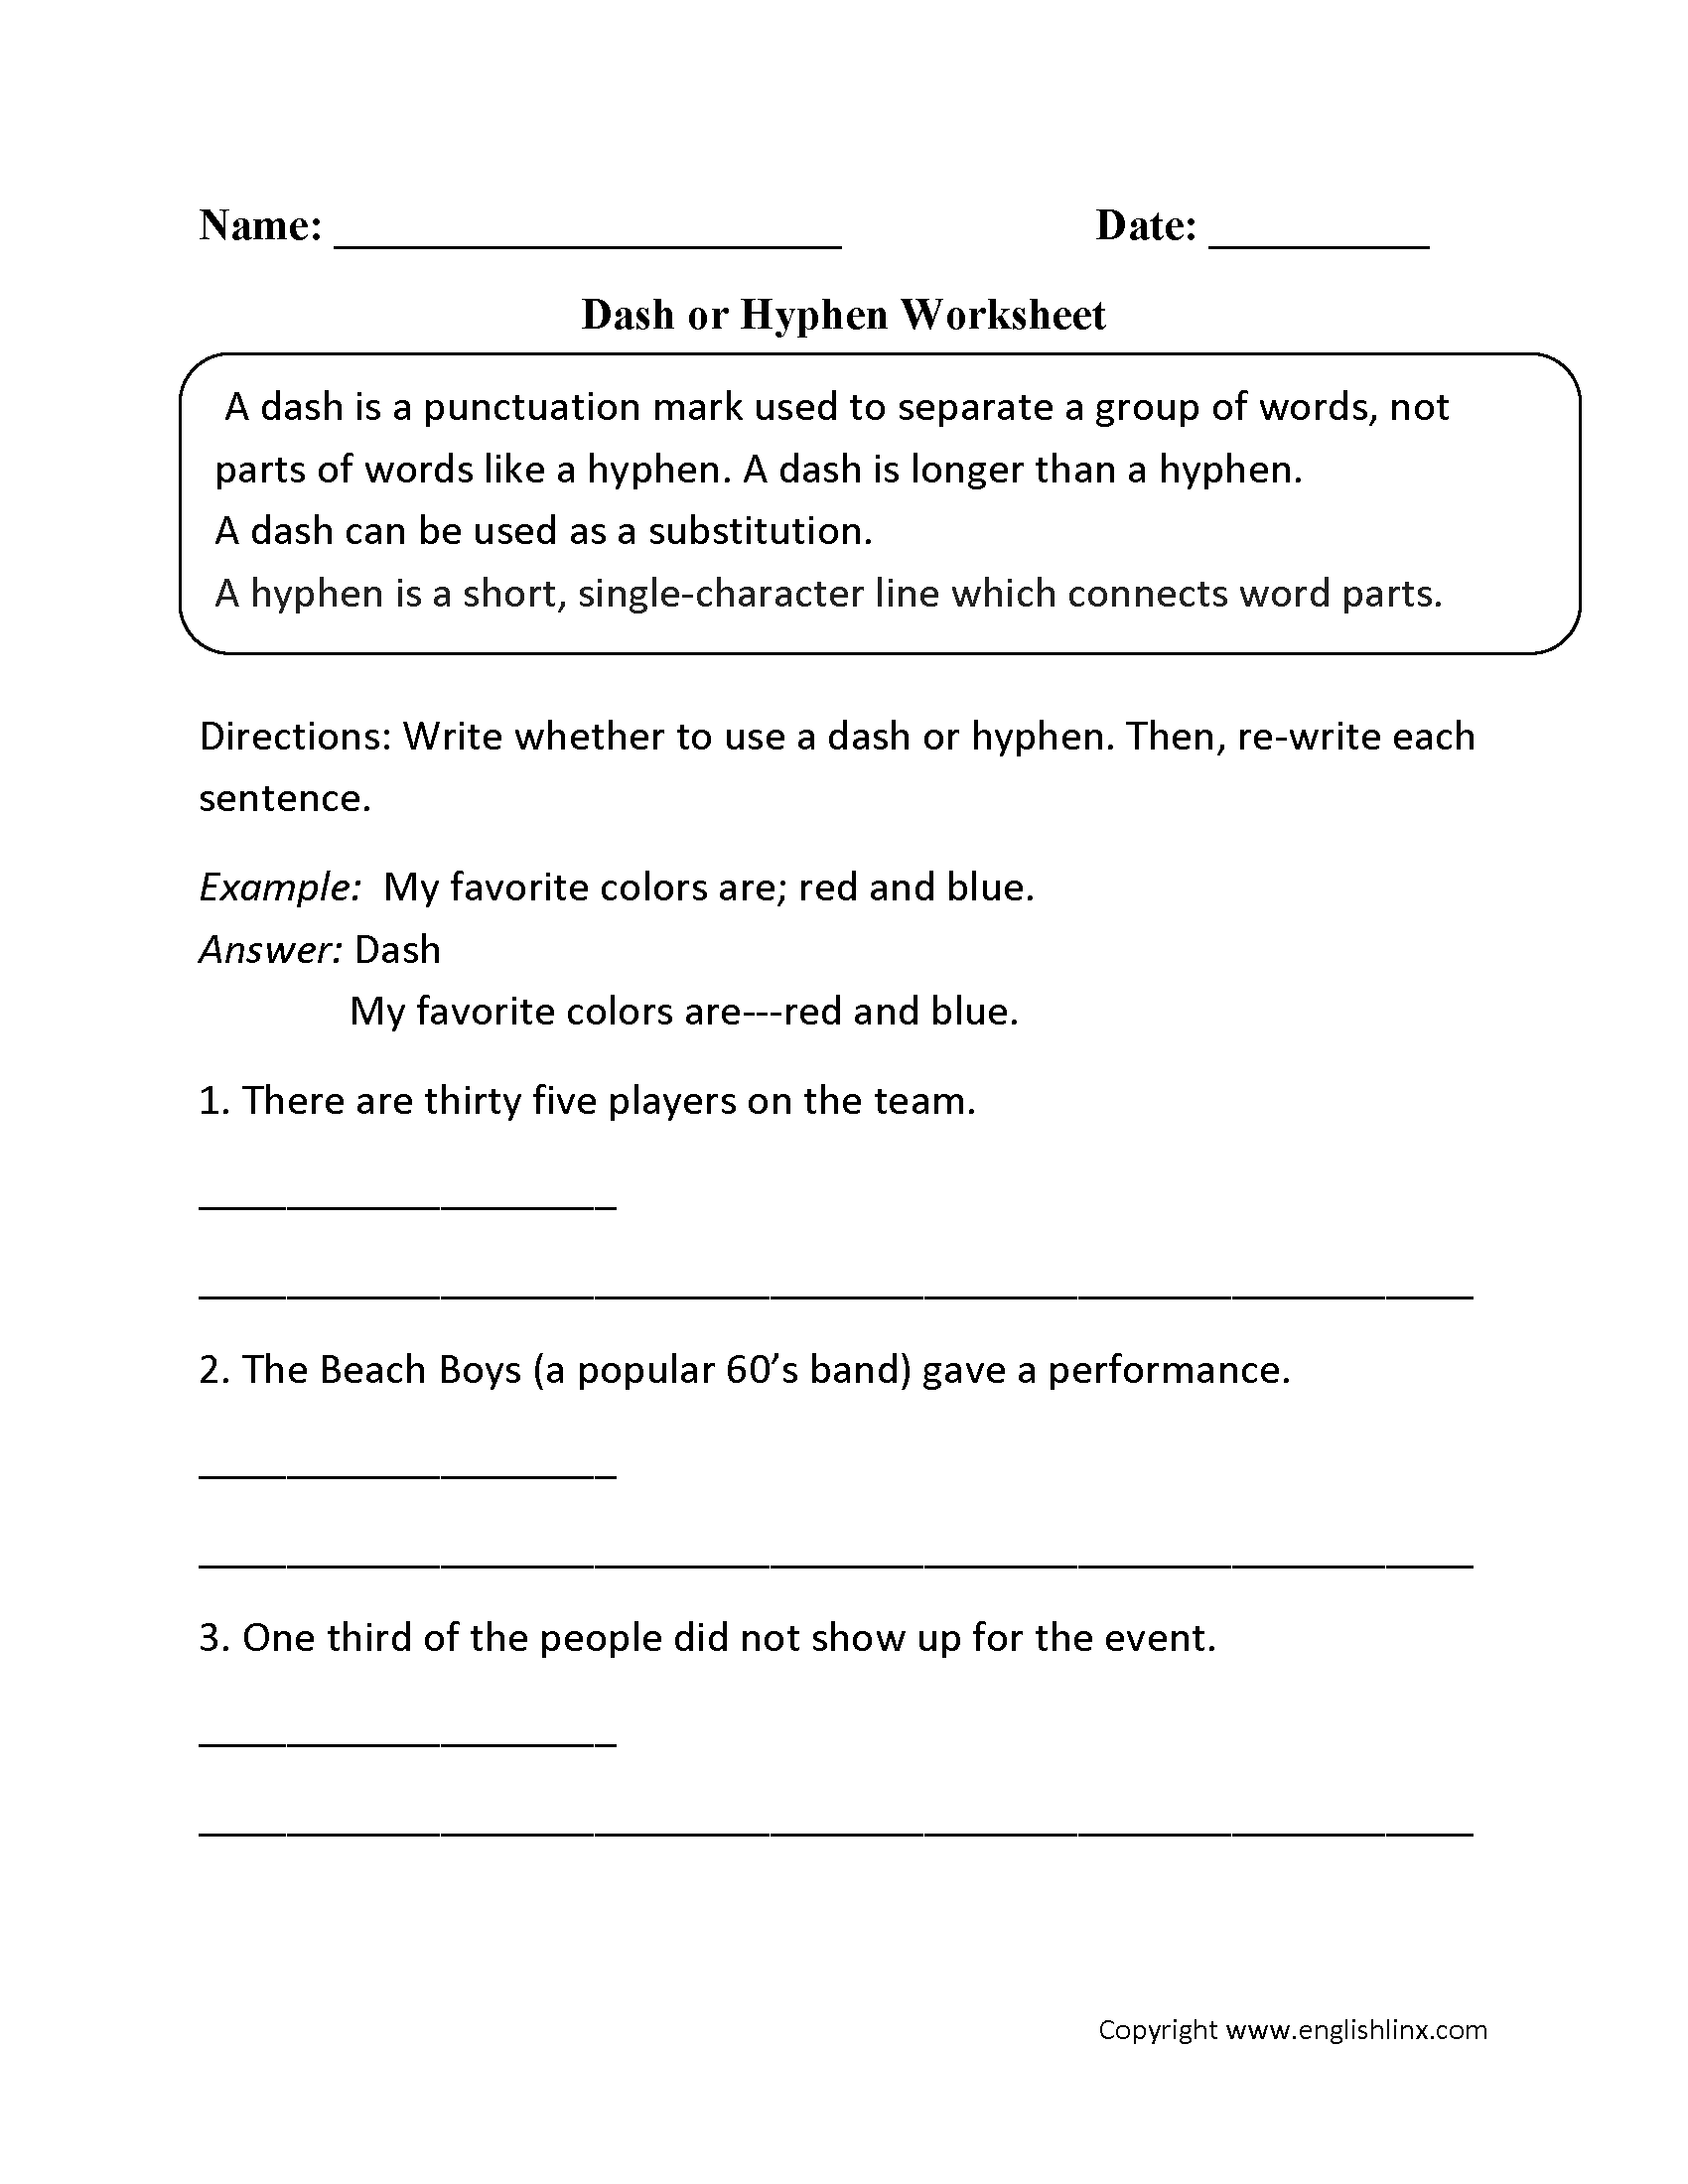 Grammar Worksheet On Hyphens And Dashes